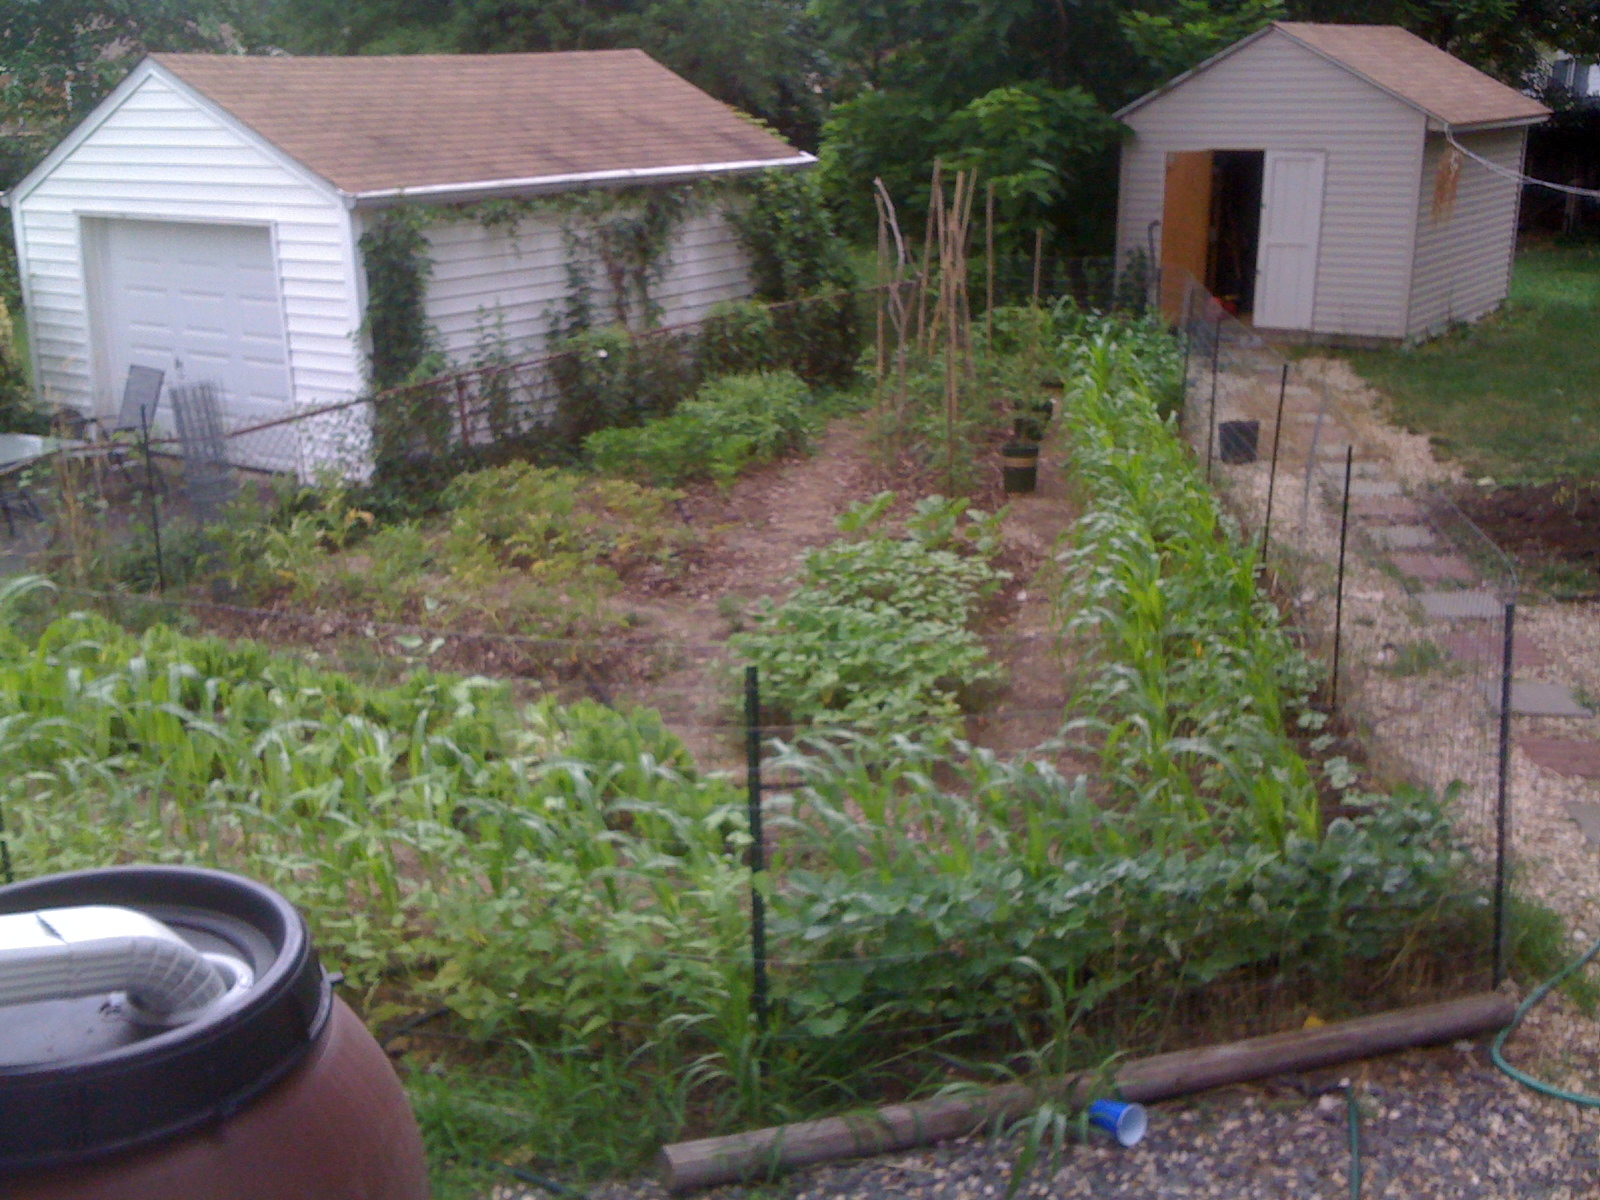 Intensely productive backyard garden, irrigated with rain barrels